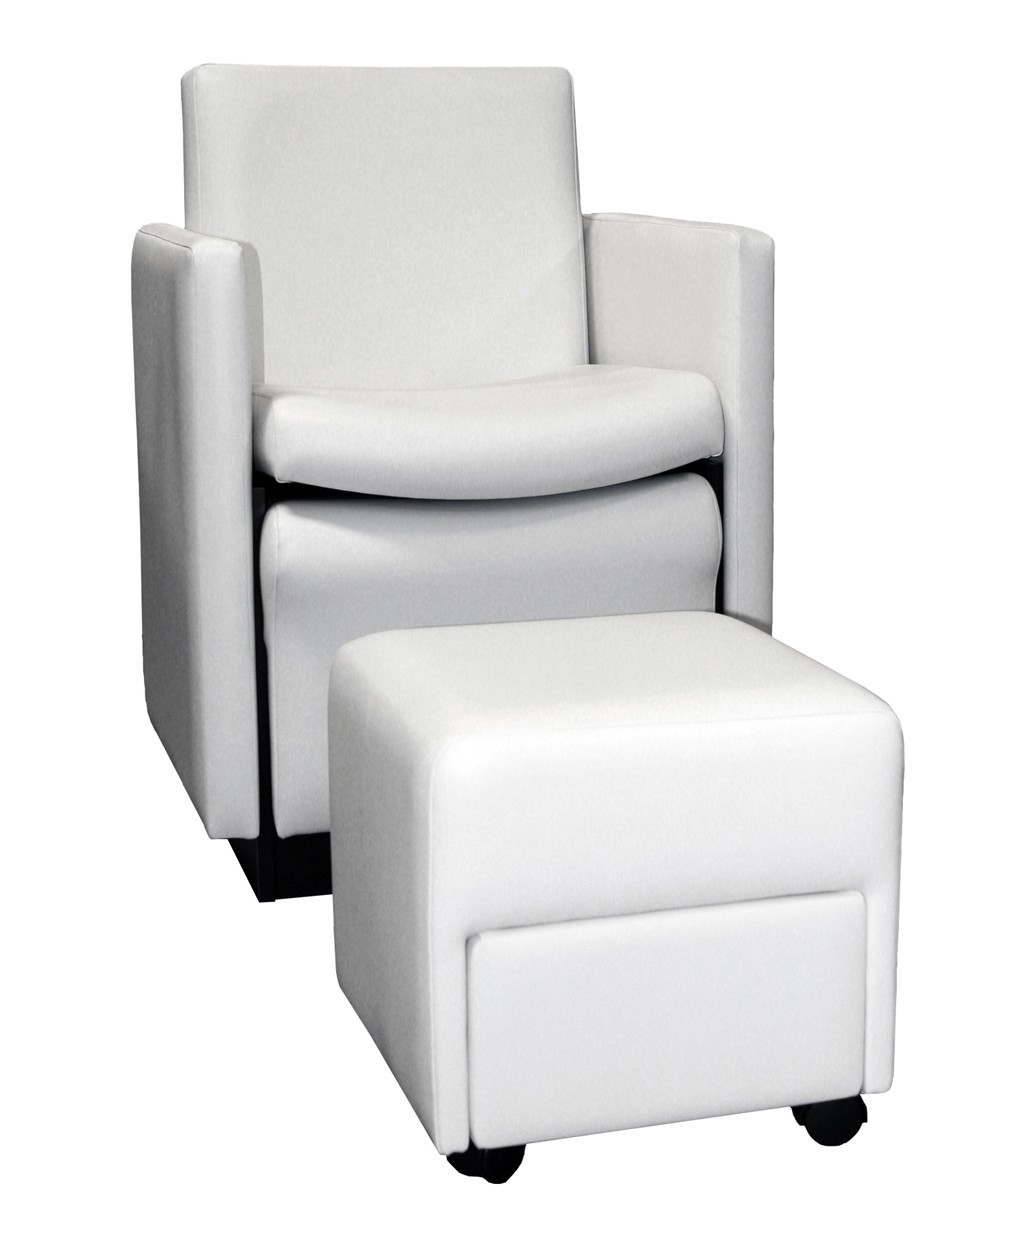 2550 Cigno Club Pedicure Chair with Footsie Bath